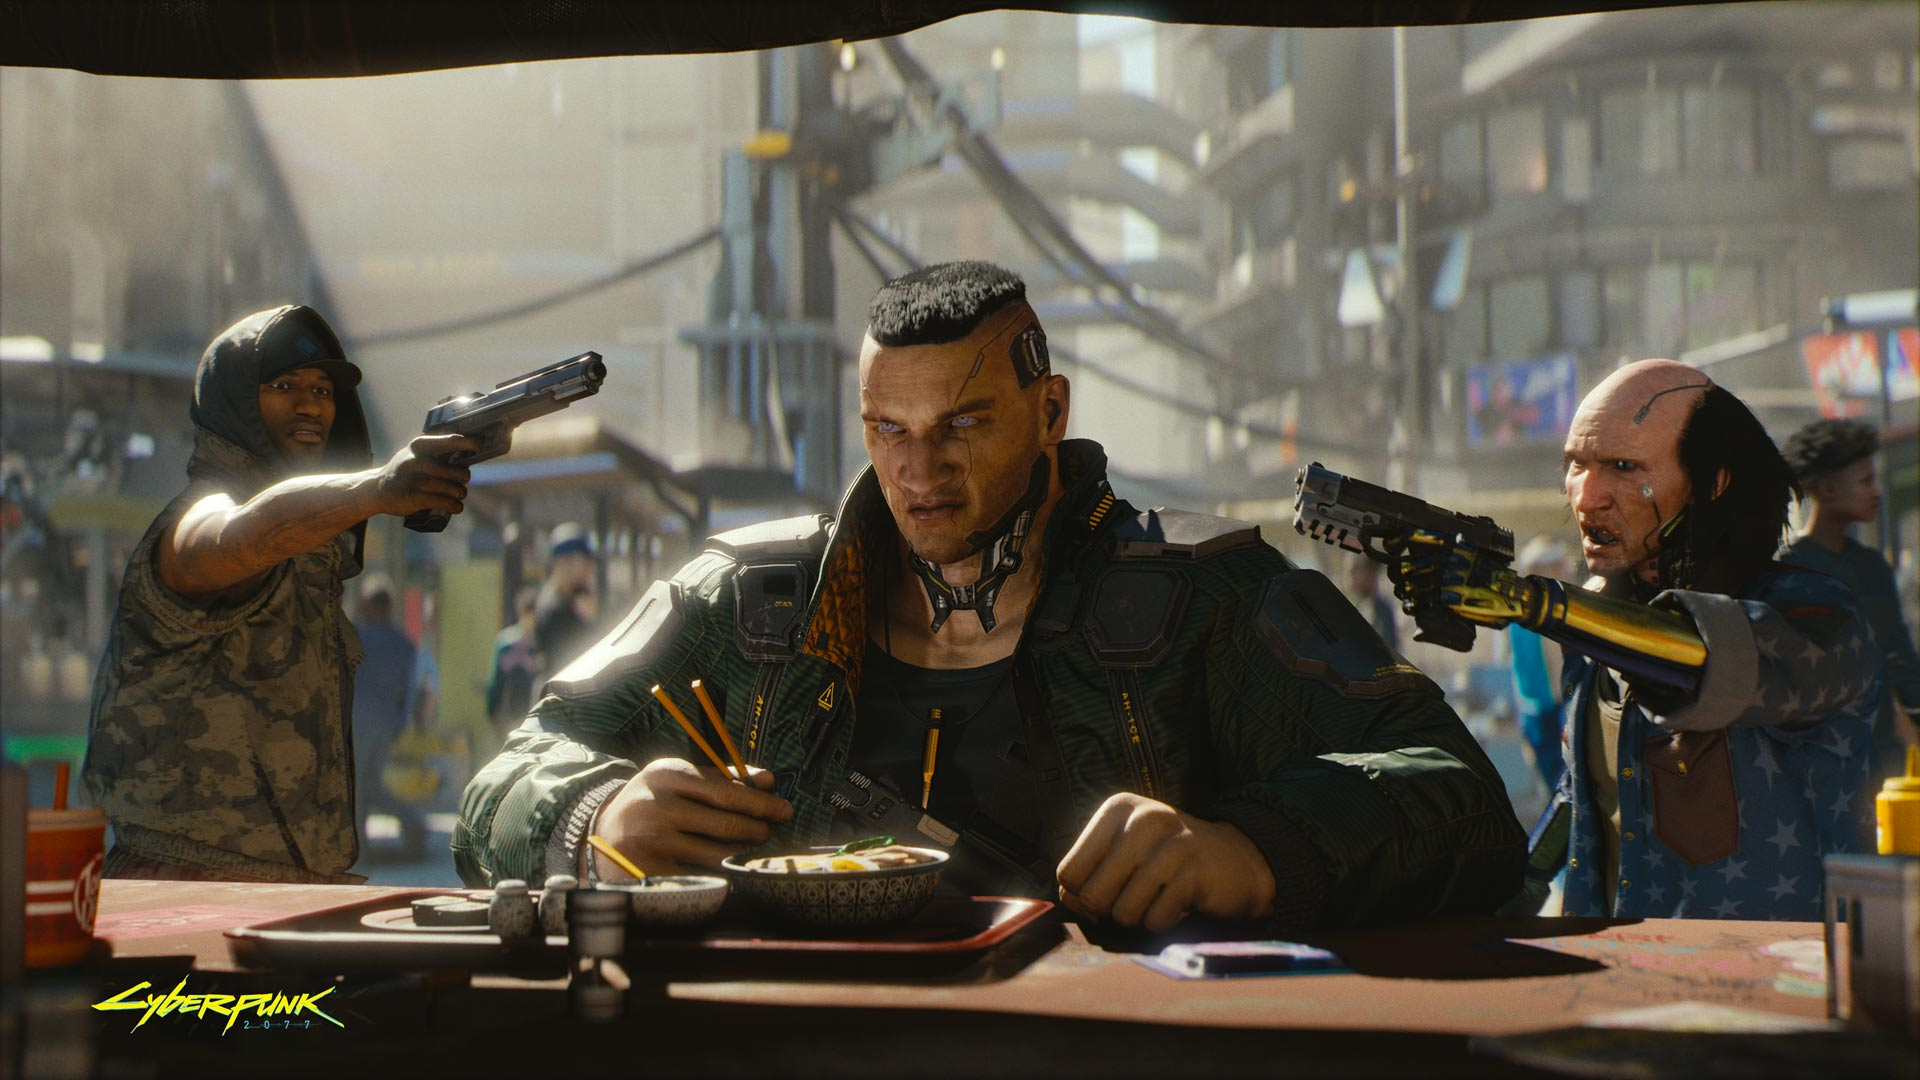 Cyberpunk 2077 - it's basically Blade Runner: The Game